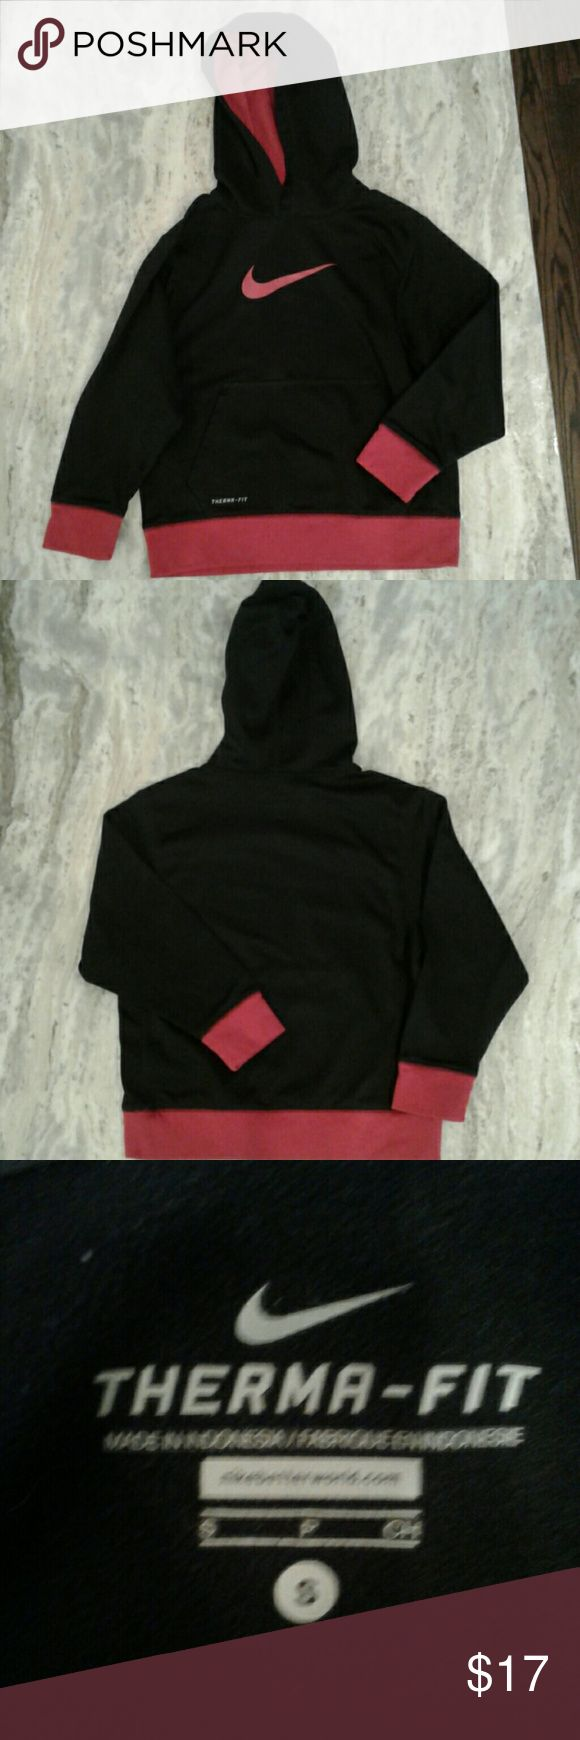 Boys Nike Hoodie Black and red Nike hoodie. Boys size sm. Excellent condition. No rips, tears or stains. Smoke free home. Nike Shirts & Tops Sweatshirts & Hoodies